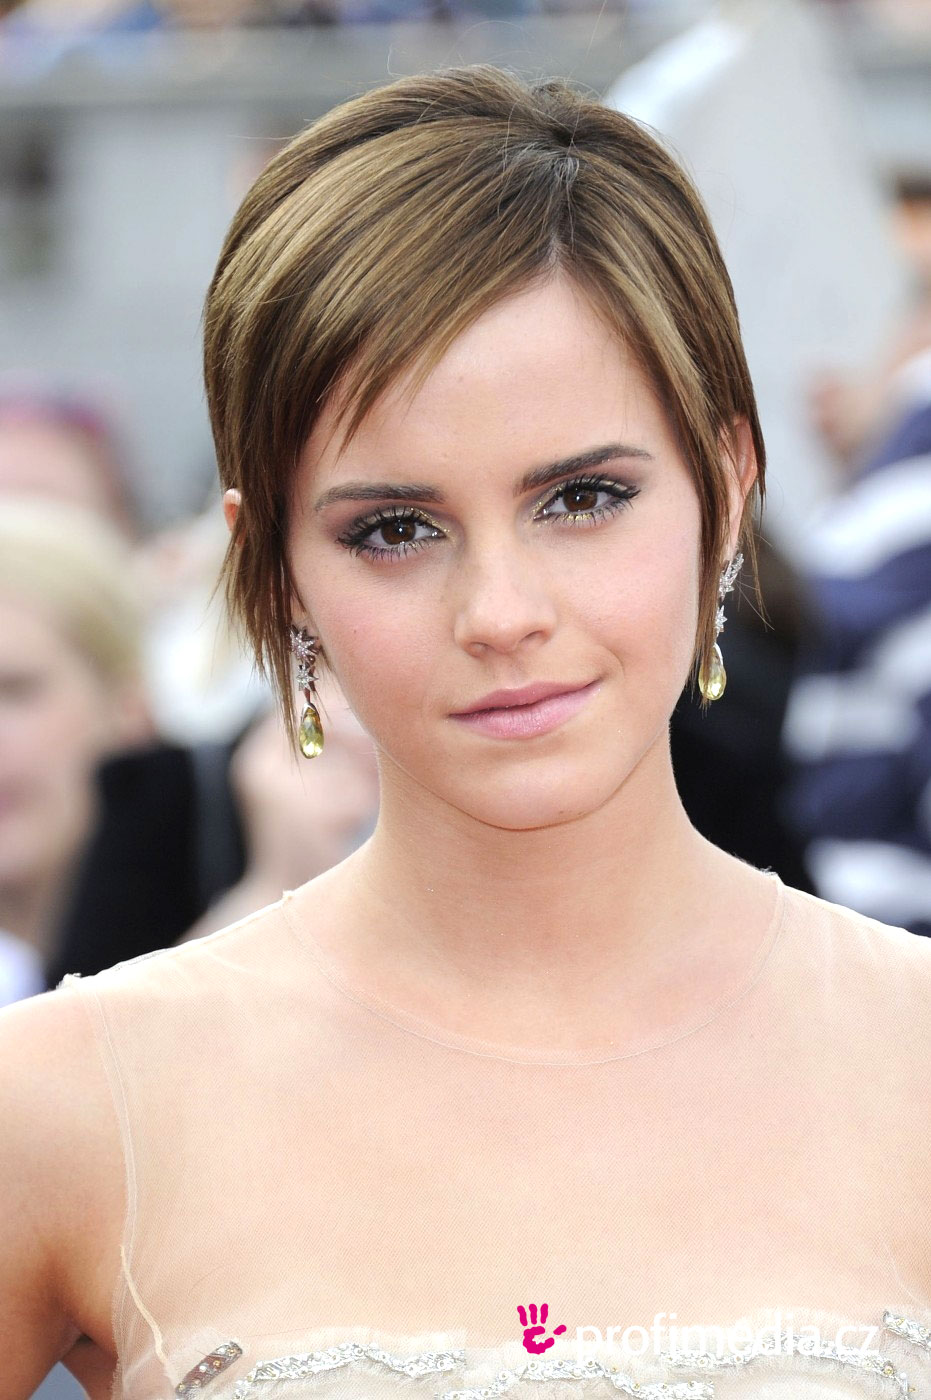 emma watson hair - photo #46